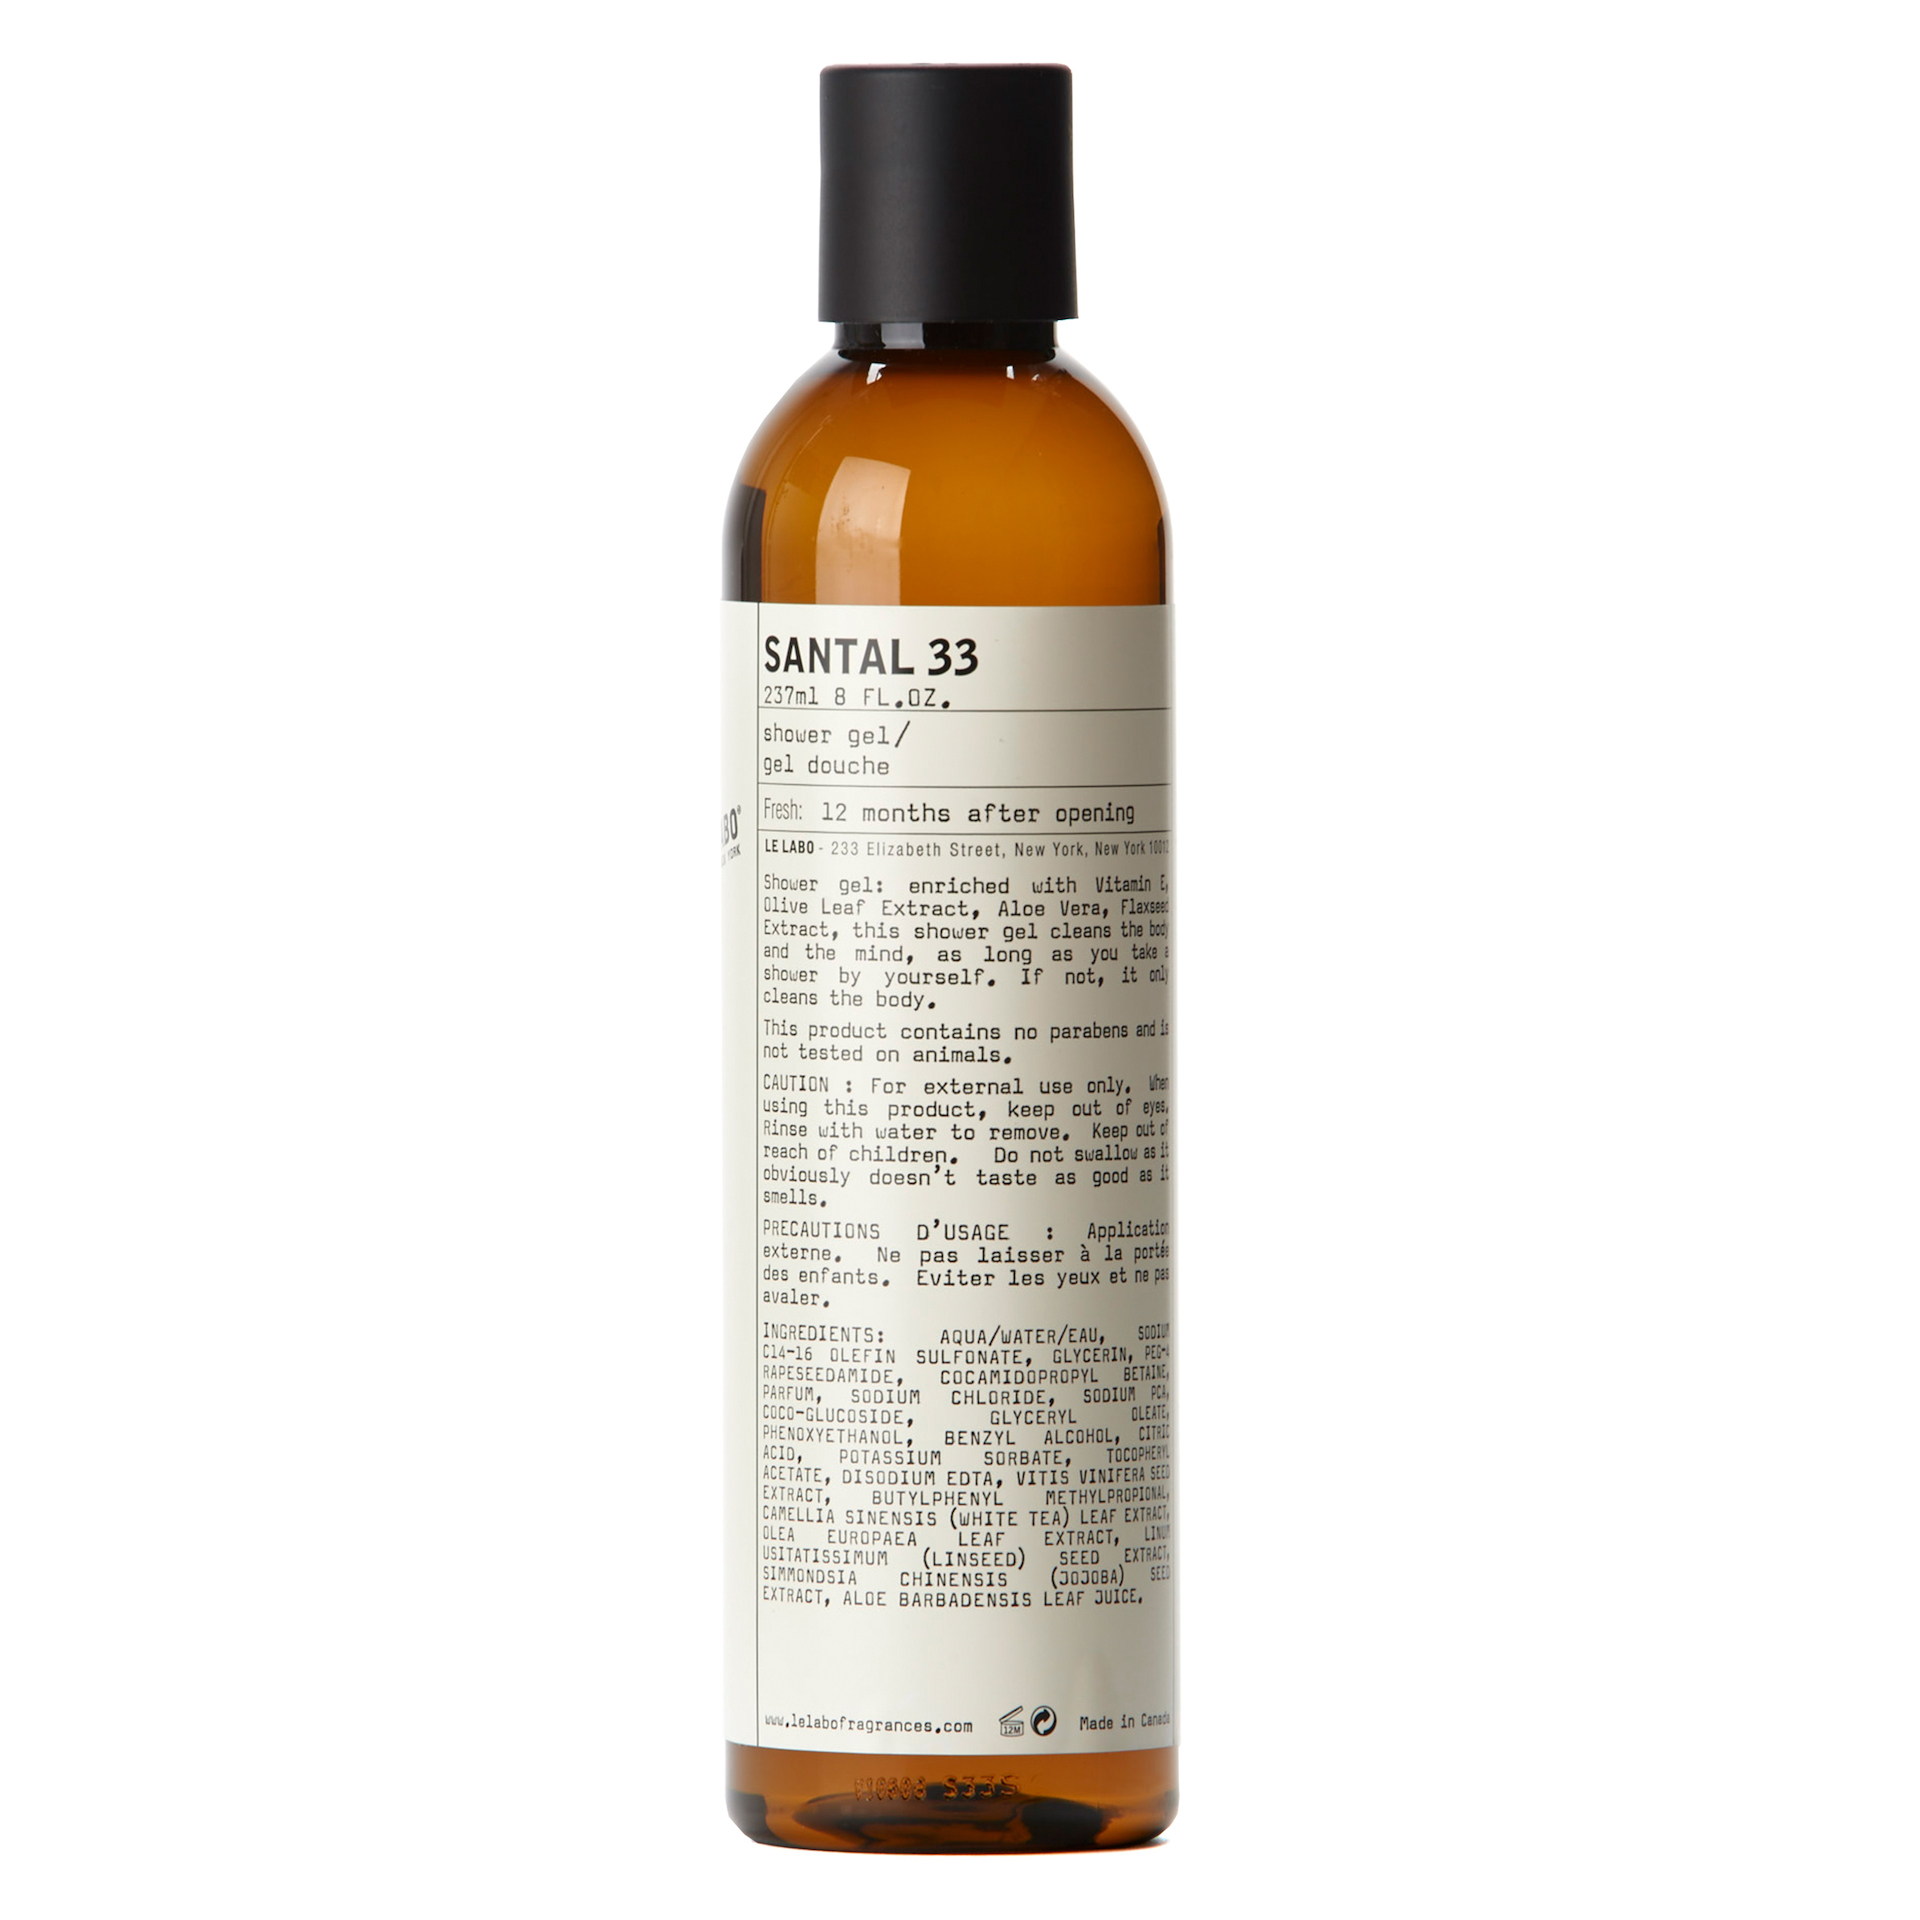 Santal 33 Shower Gel 237 ml